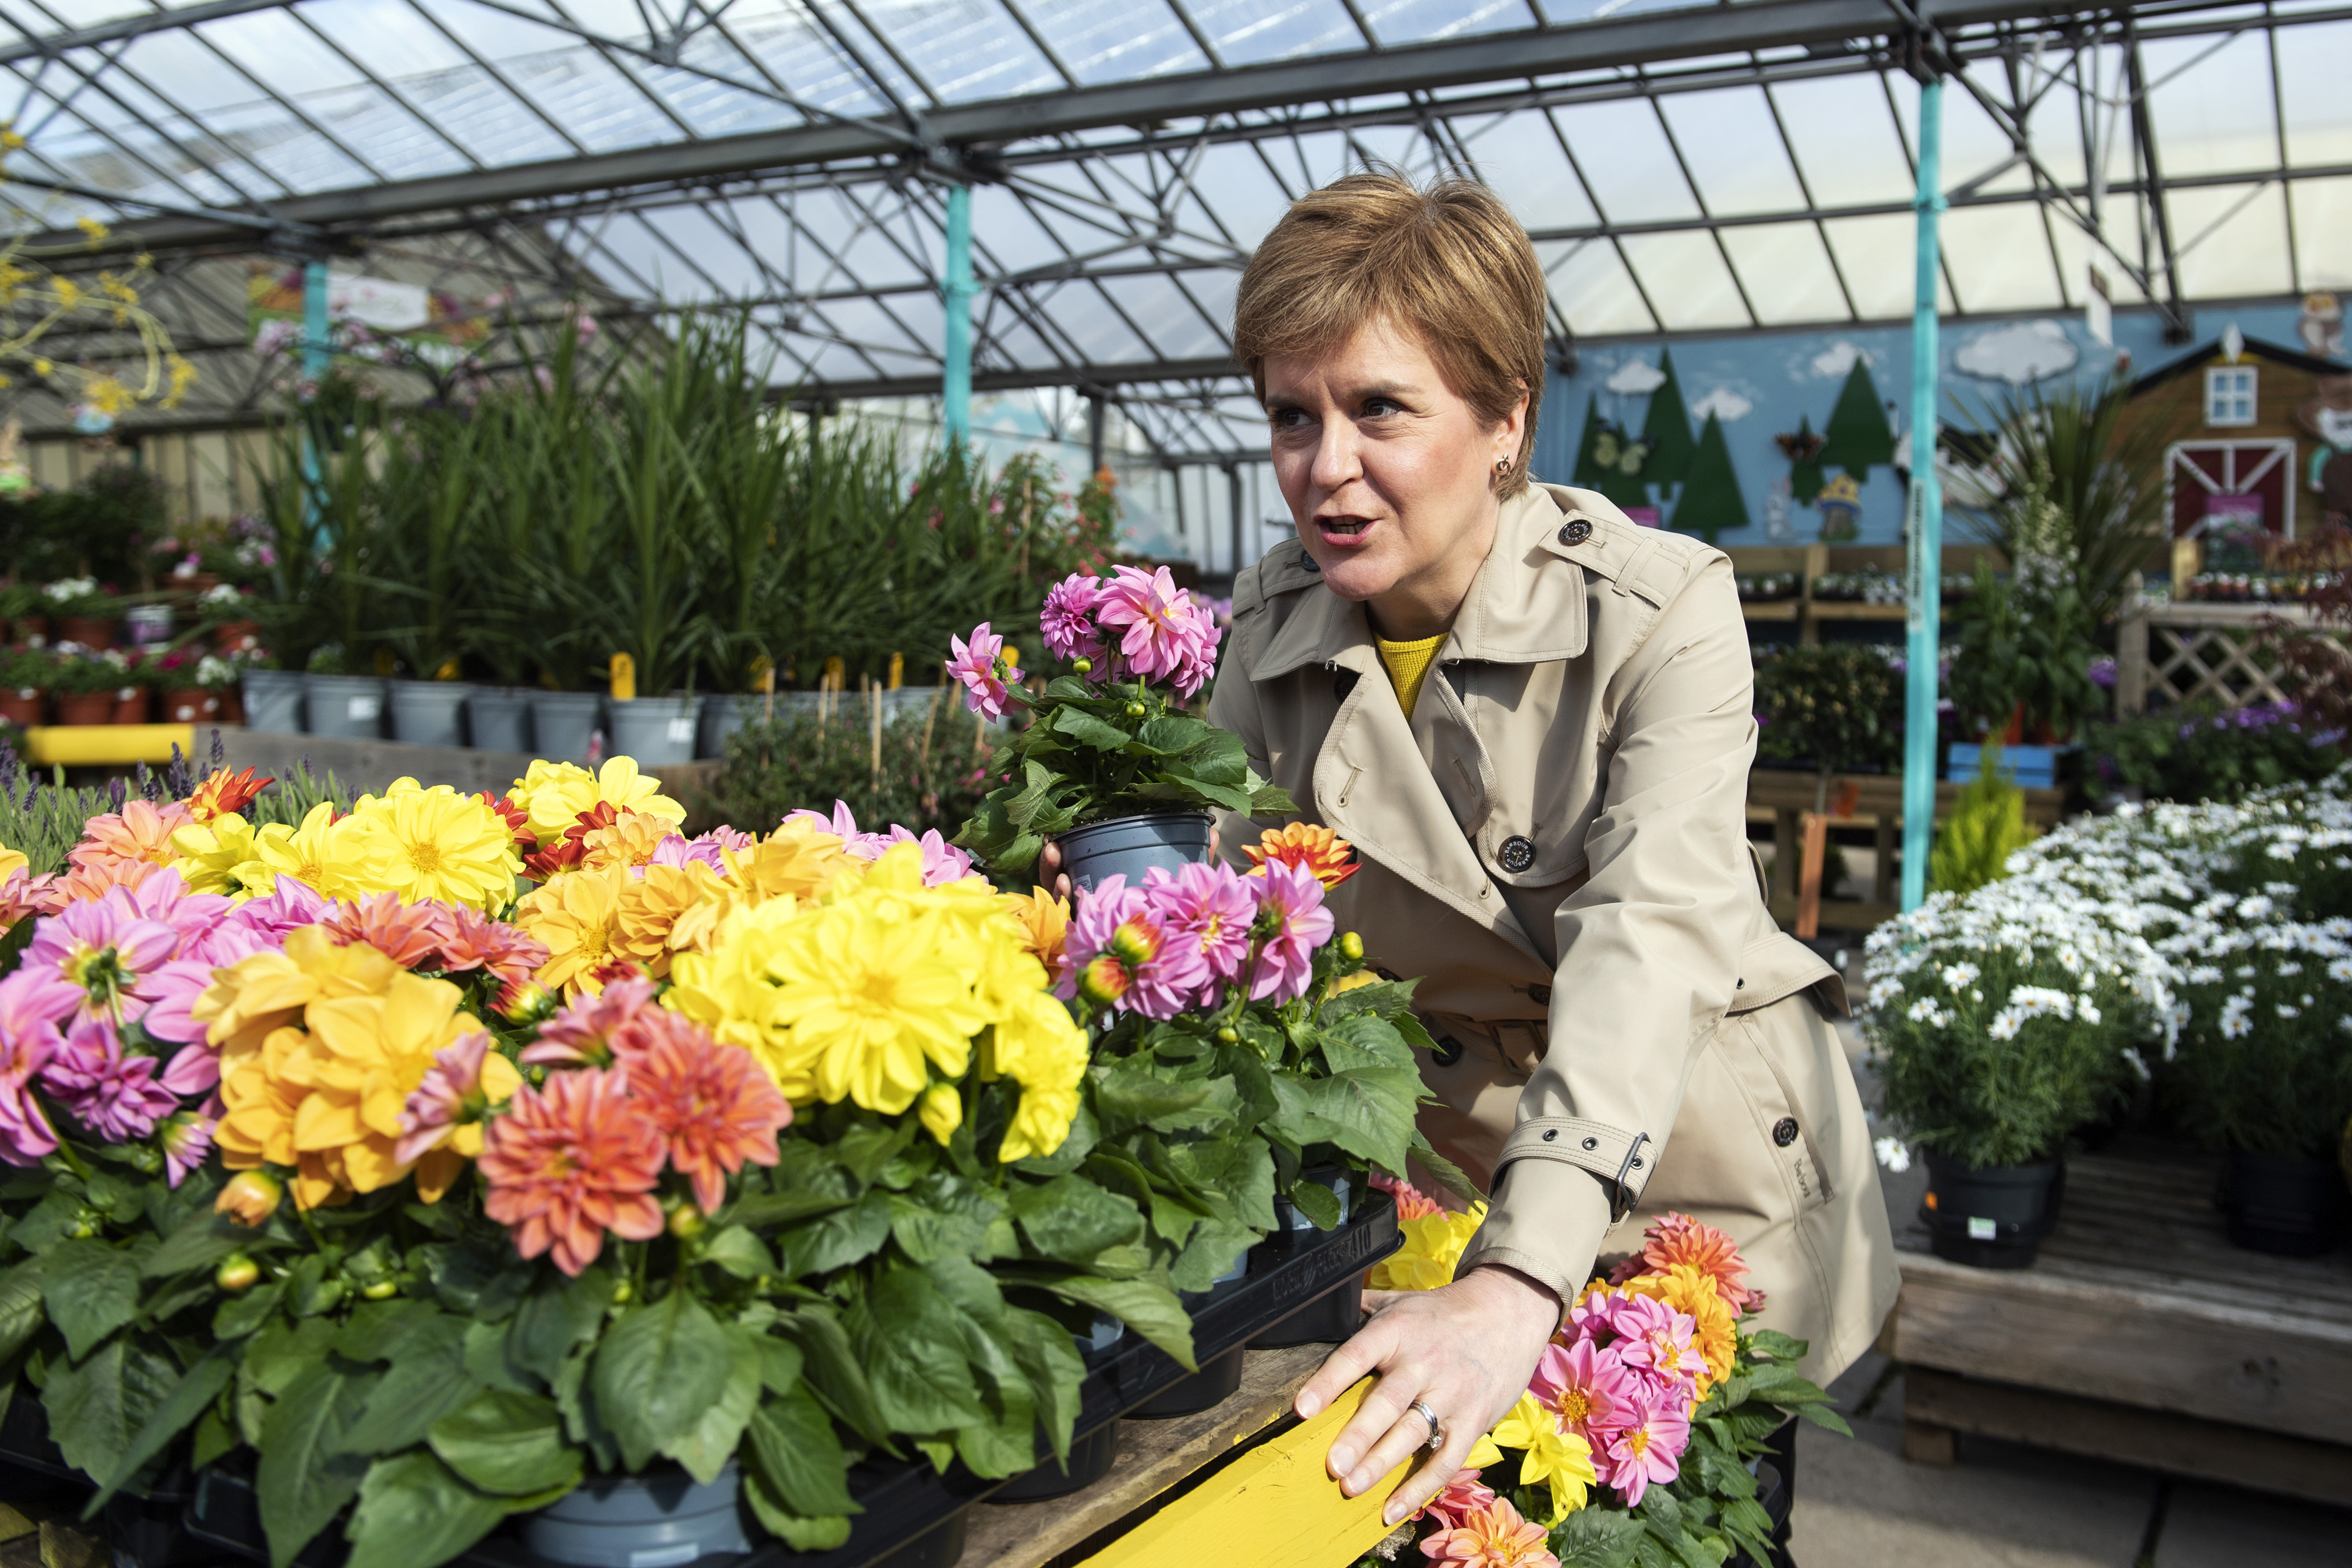 <p>Scotland's First Minister and leader of the Scottish National Party (SNP), Nicola Sturgeon visits Rouken Glen Garden Centre in Giffnock, while campaigning for the Scottish Parliamentary election. Picture date: Wednesday April 28, 2021.</p>